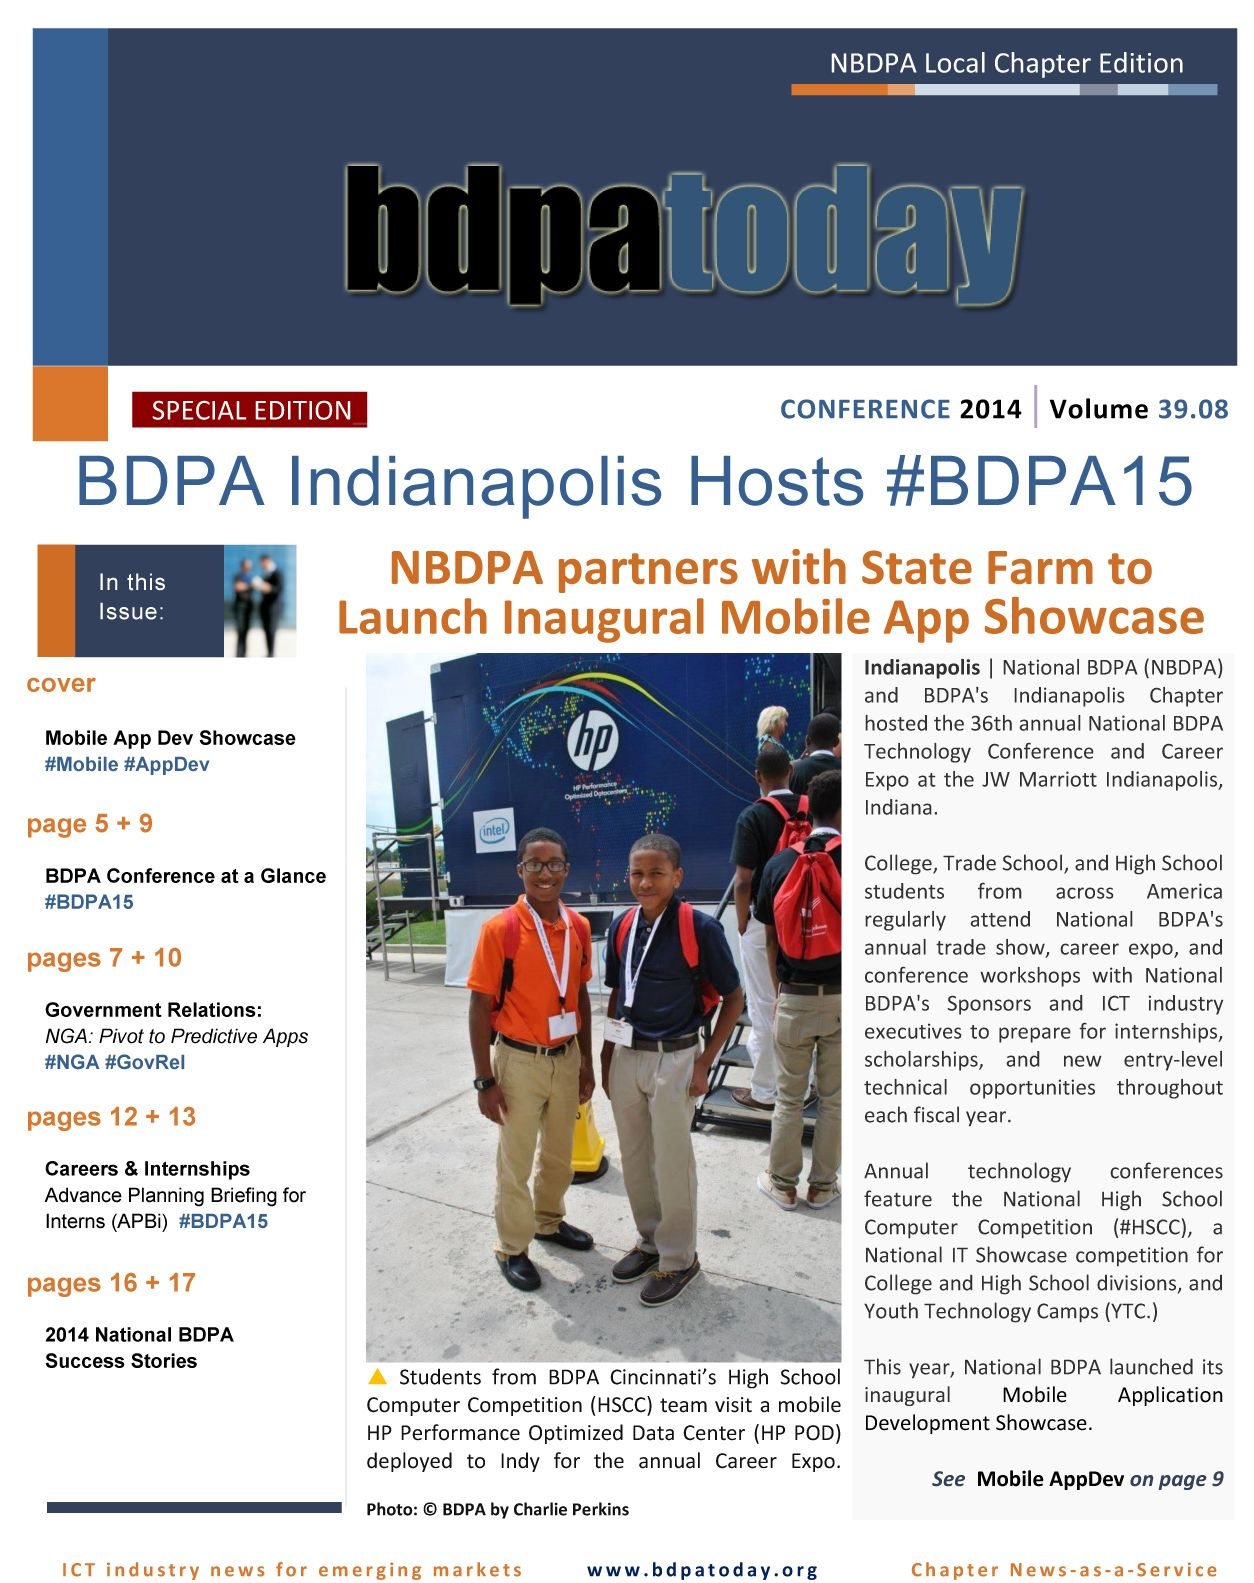 Your 2014 Conference Edition of bdpatoday features this